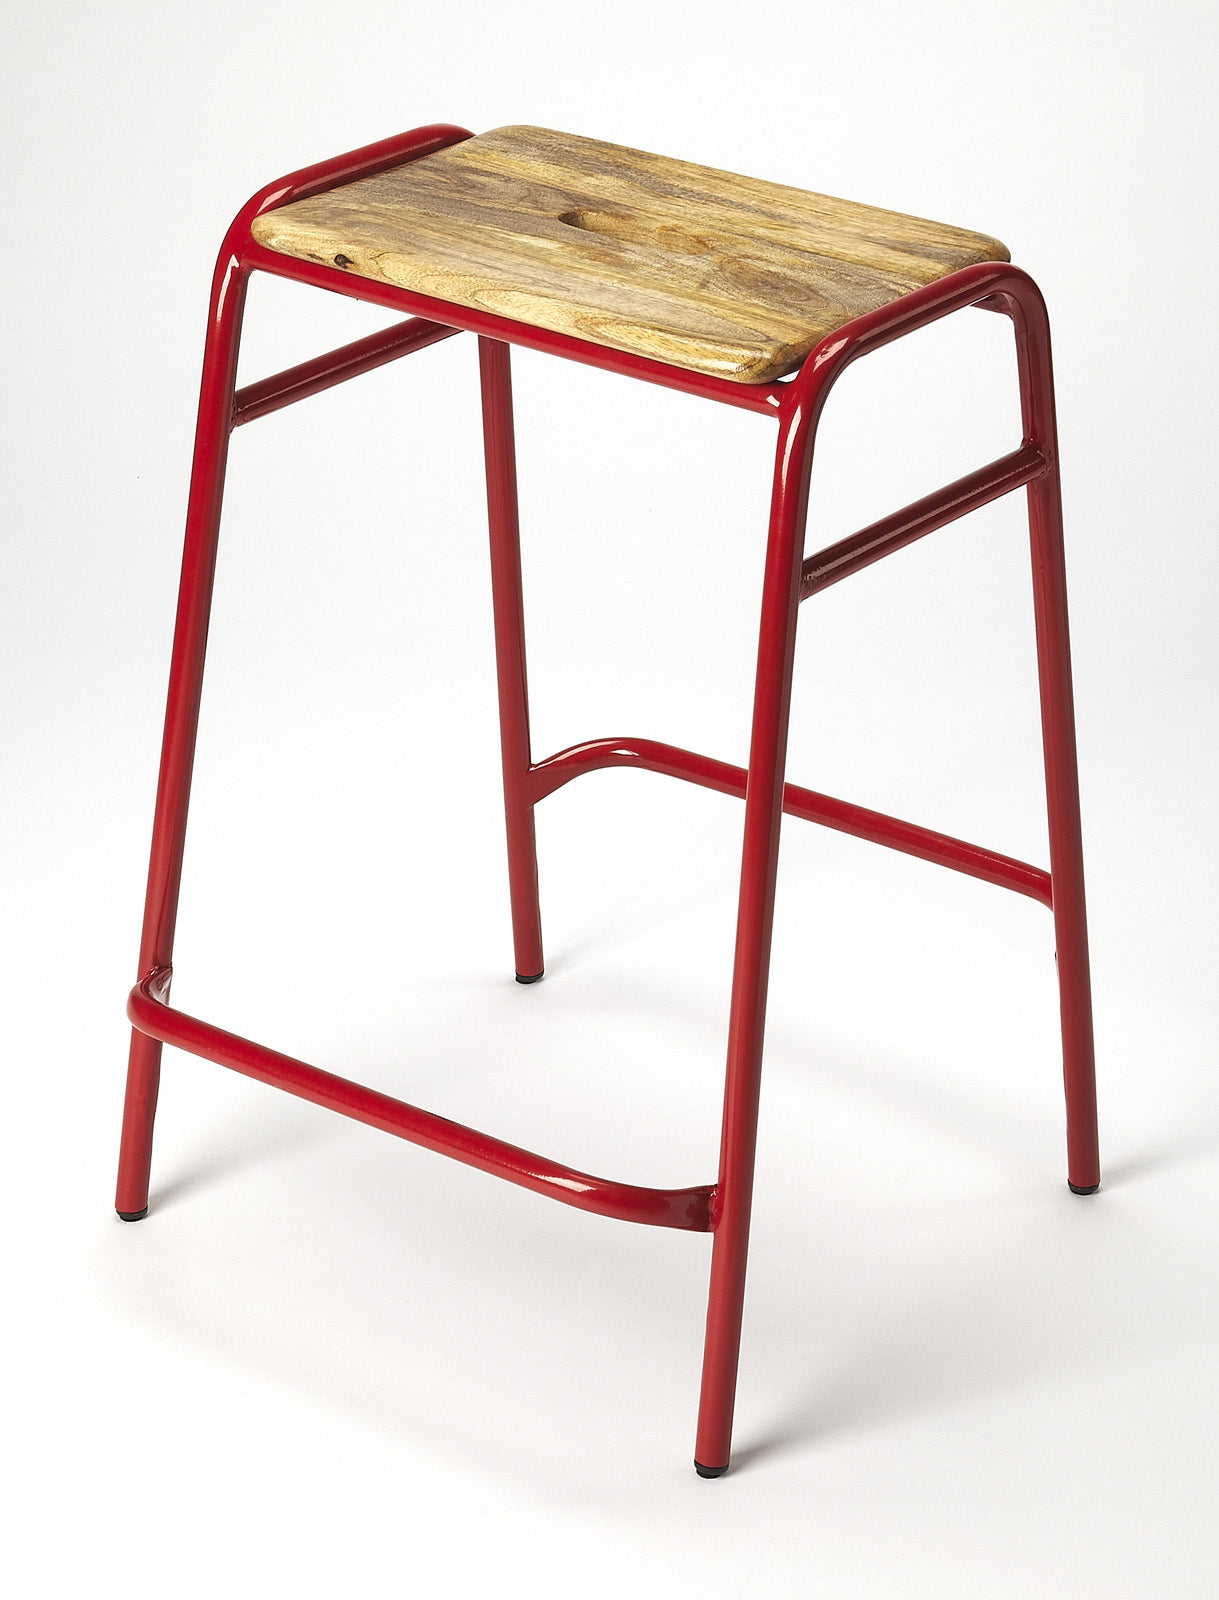 Super Buy Butler Furniture But 5280293 Dawson Red Counter Stool At Contemporary Furniture Warehouse Machost Co Dining Chair Design Ideas Machostcouk